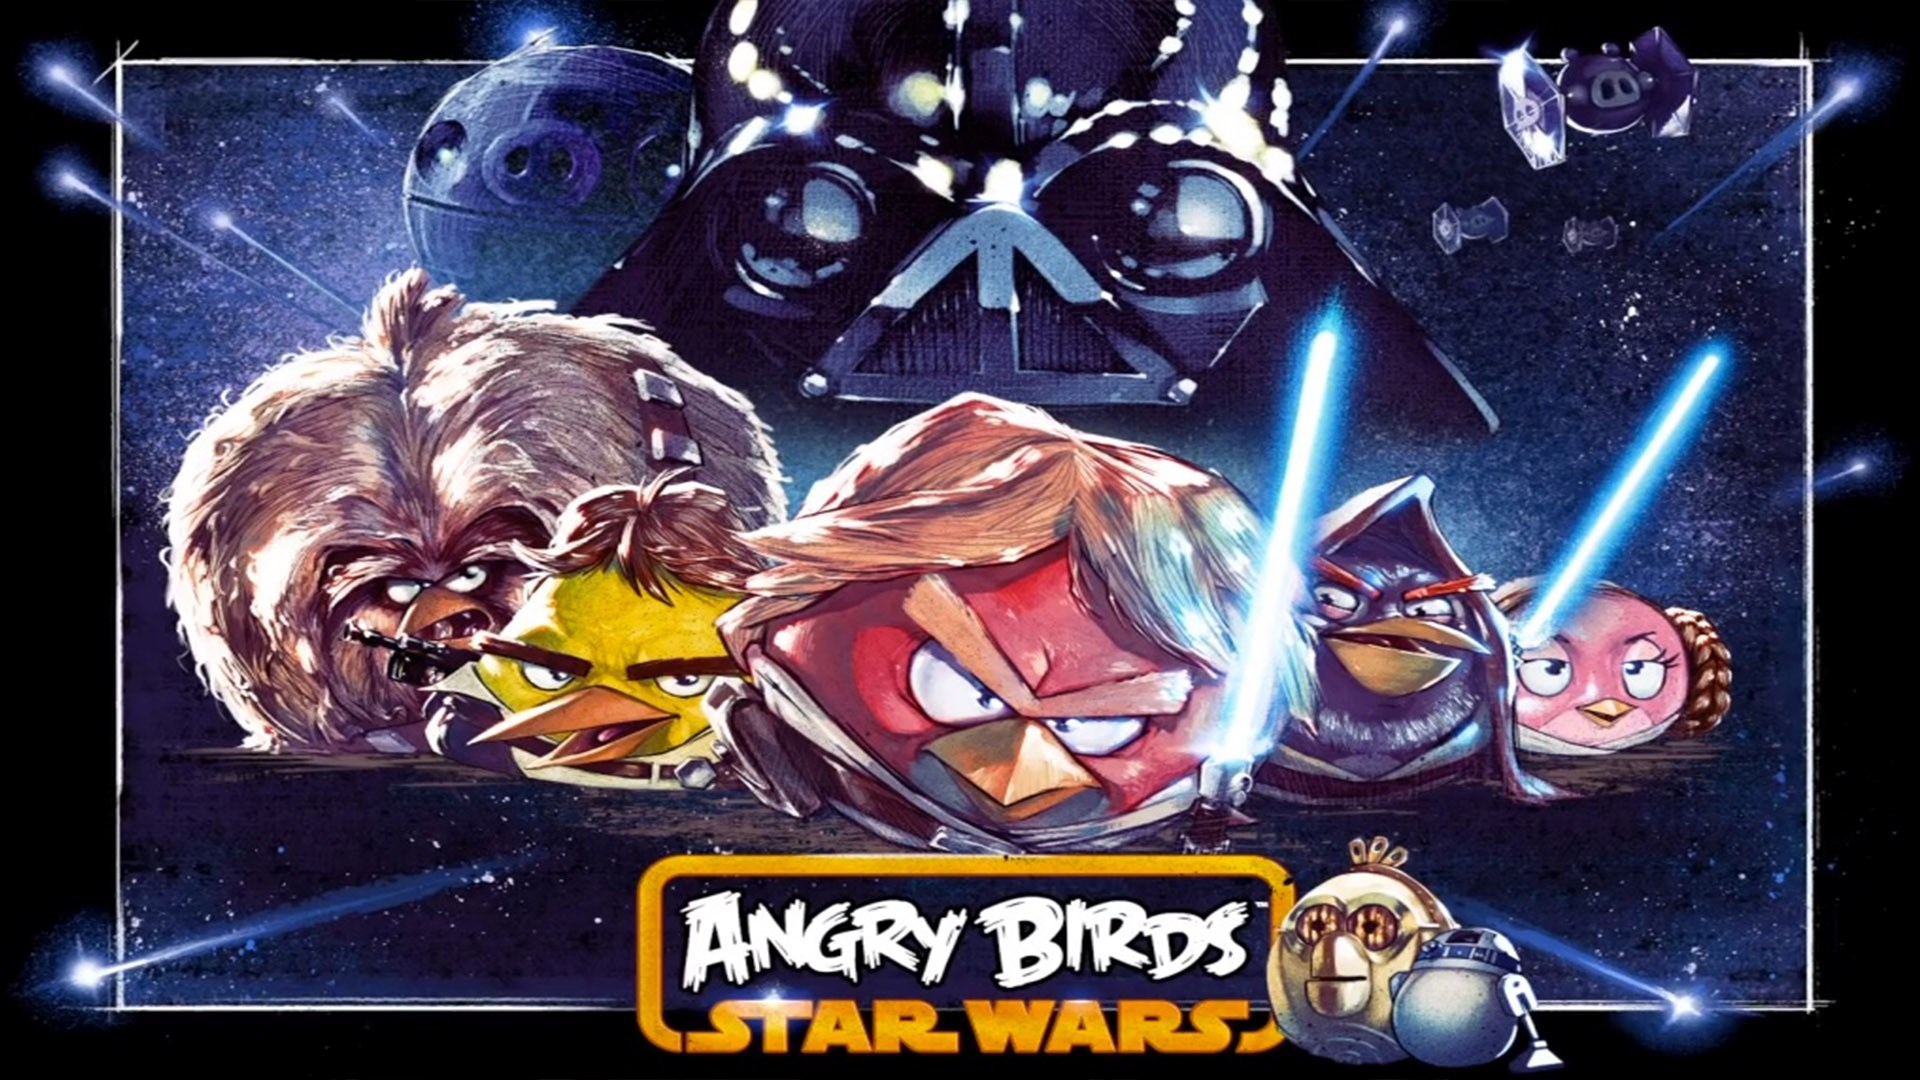 free-high-resolution-angry-birds-star-wars-1920x1080-kB-wallpaper-wpc9005240